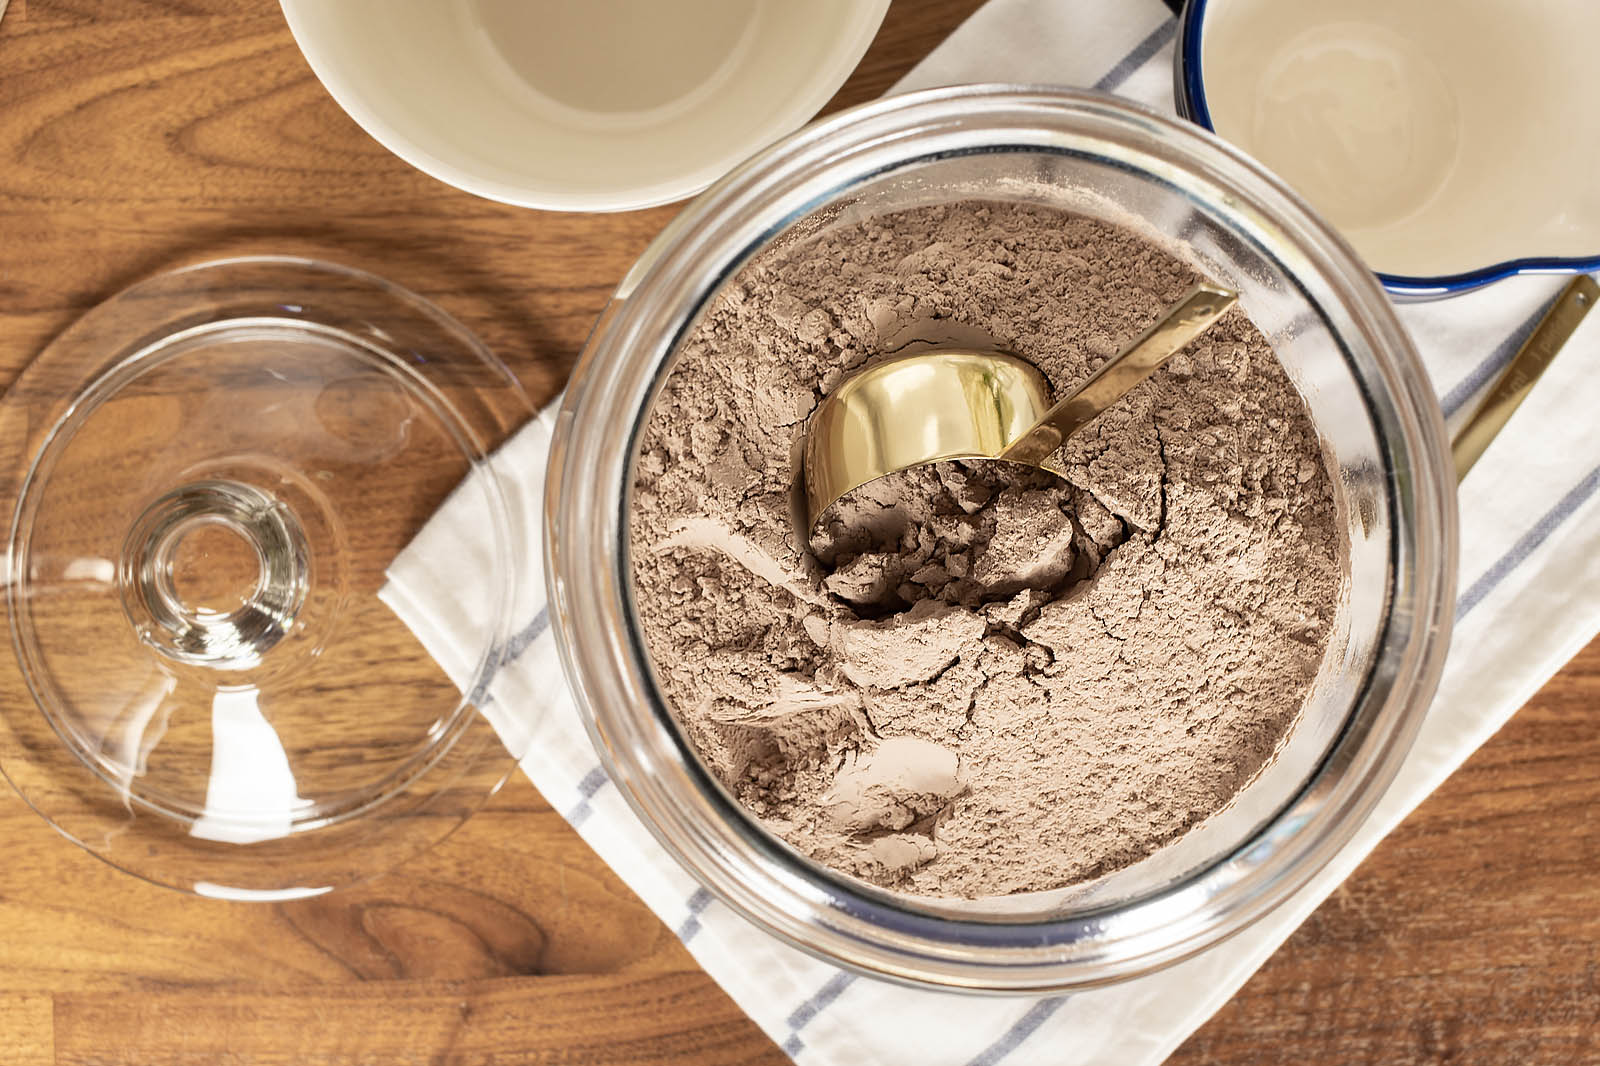 This homemade chocolate cake mix recipe can be made to replace a cake mix when you need one for a recipe, or you can multiply it to make a big batch so you'll have it on hand so you can make chocolate cake in a snap.